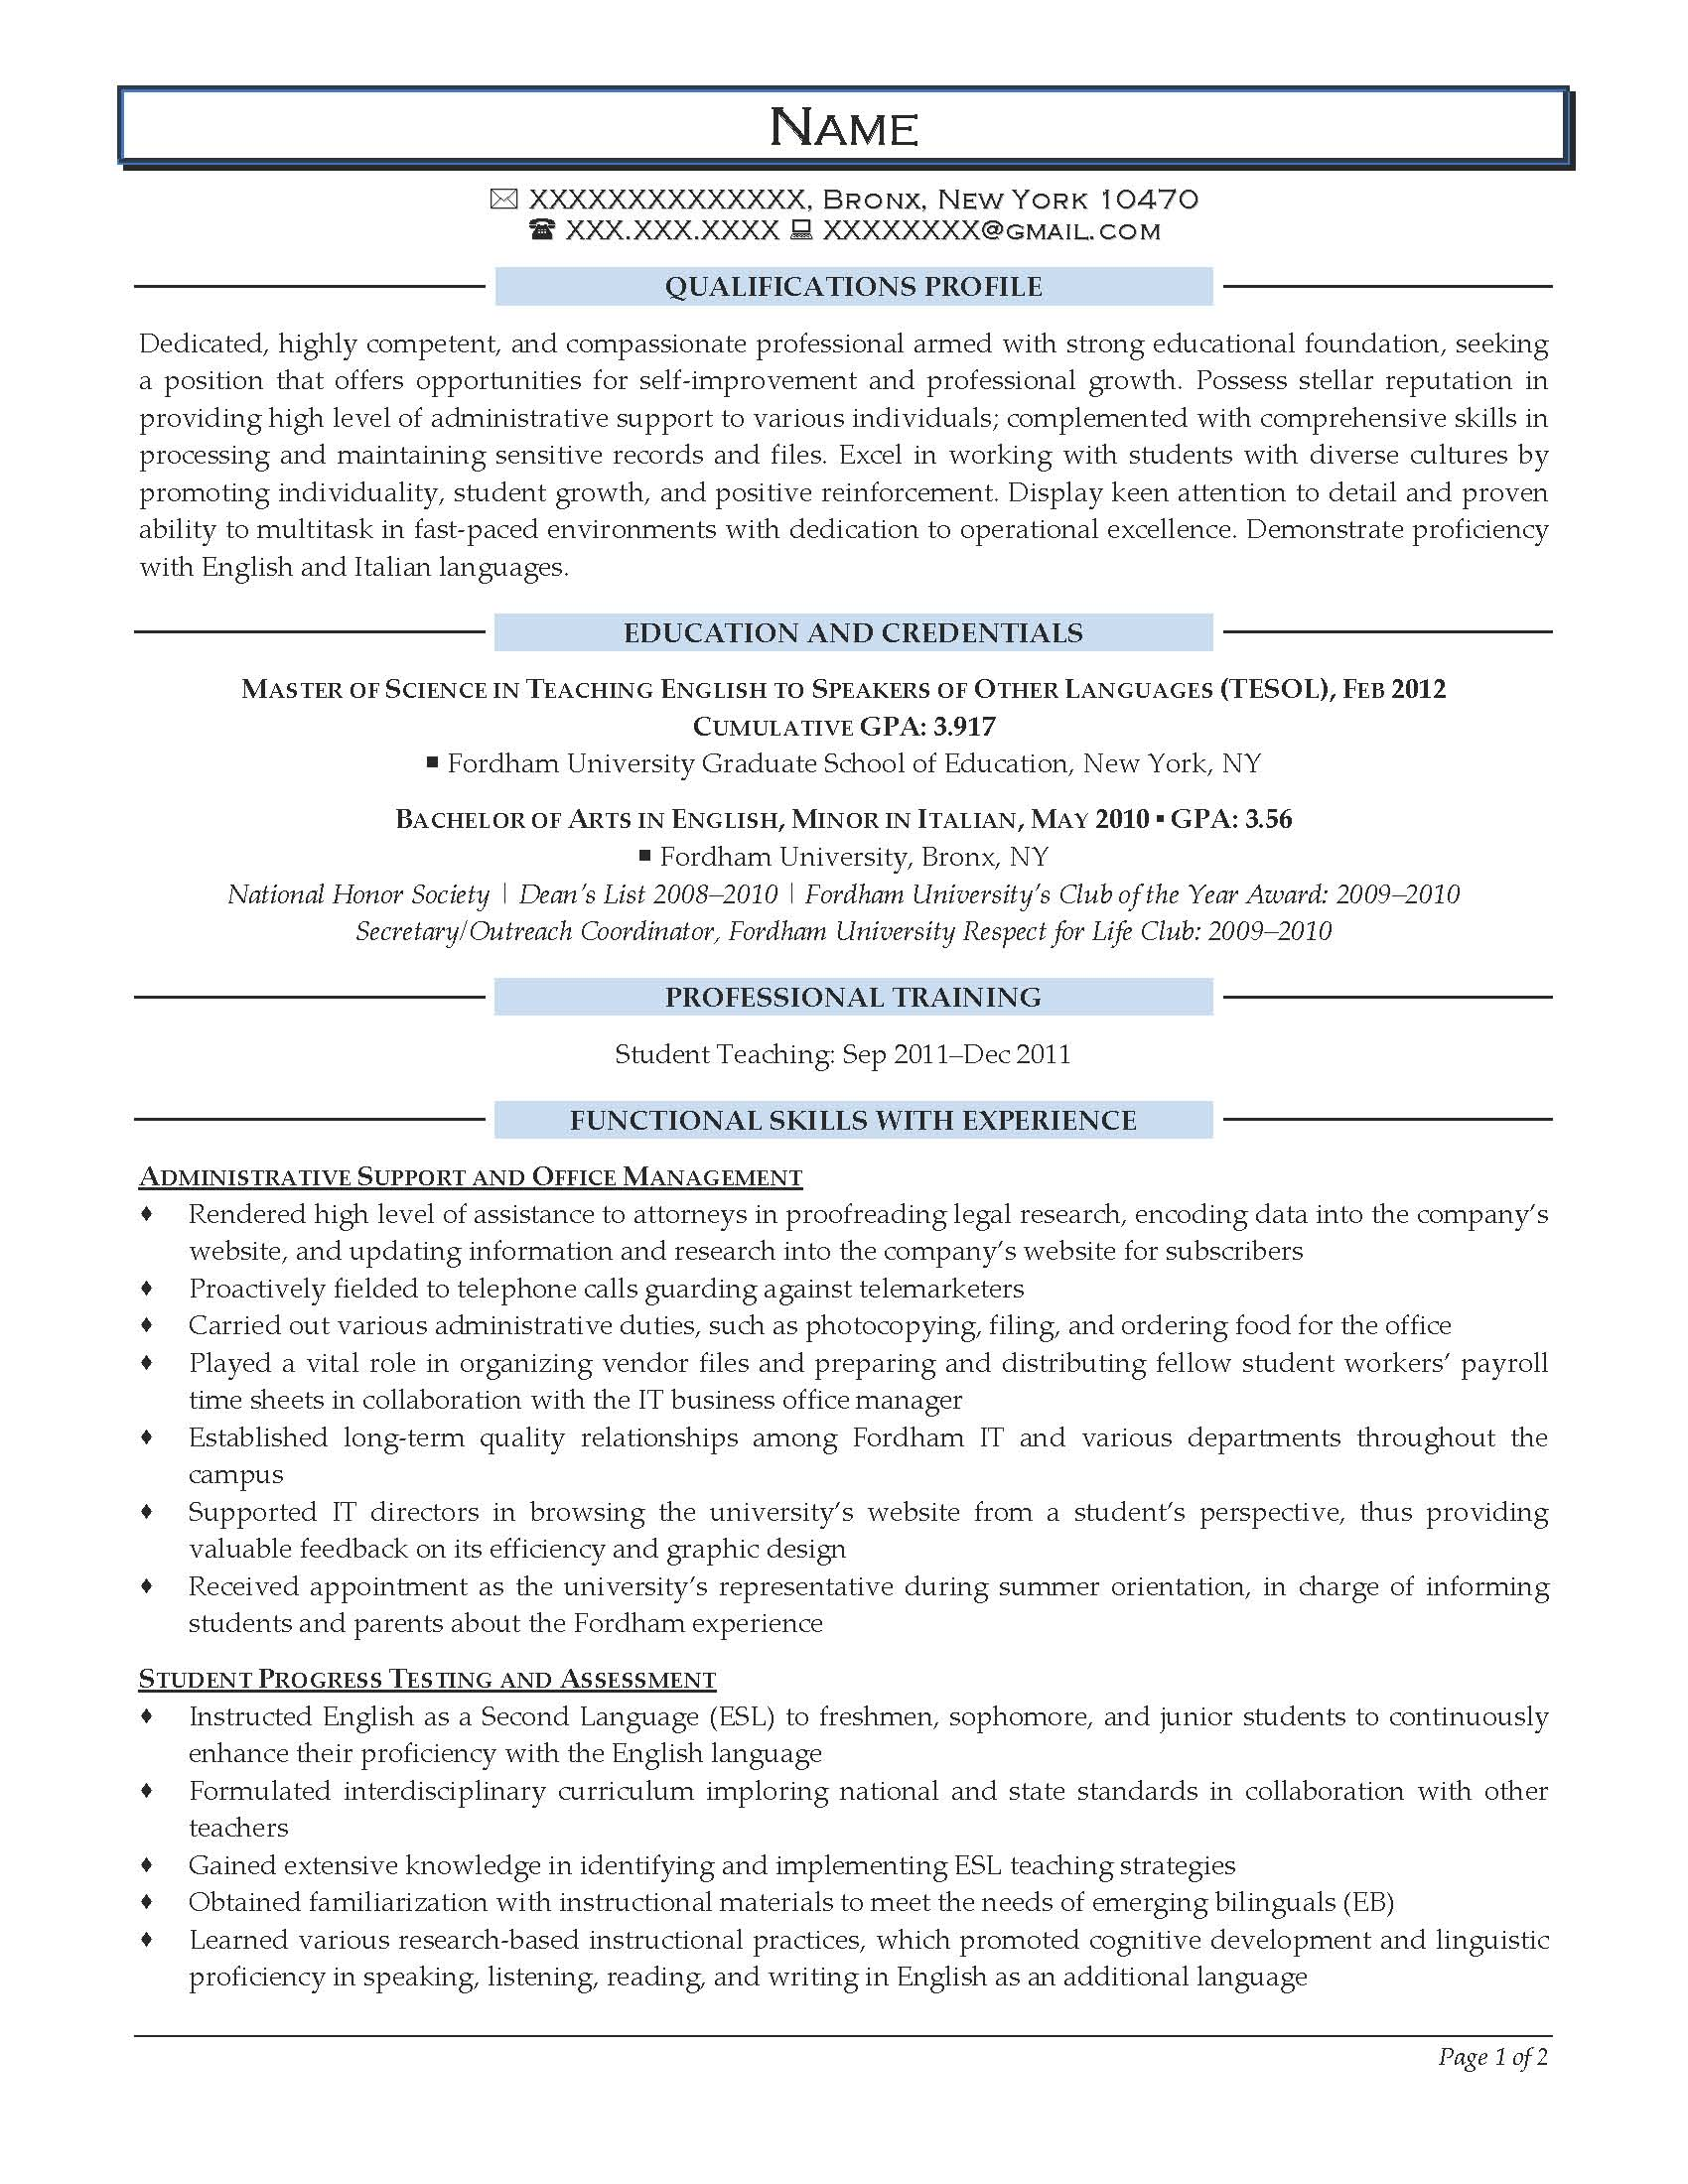 resume writing military cover letter resume examples resume writing military military resume writers military transition resumes entry level resume samples resume prime